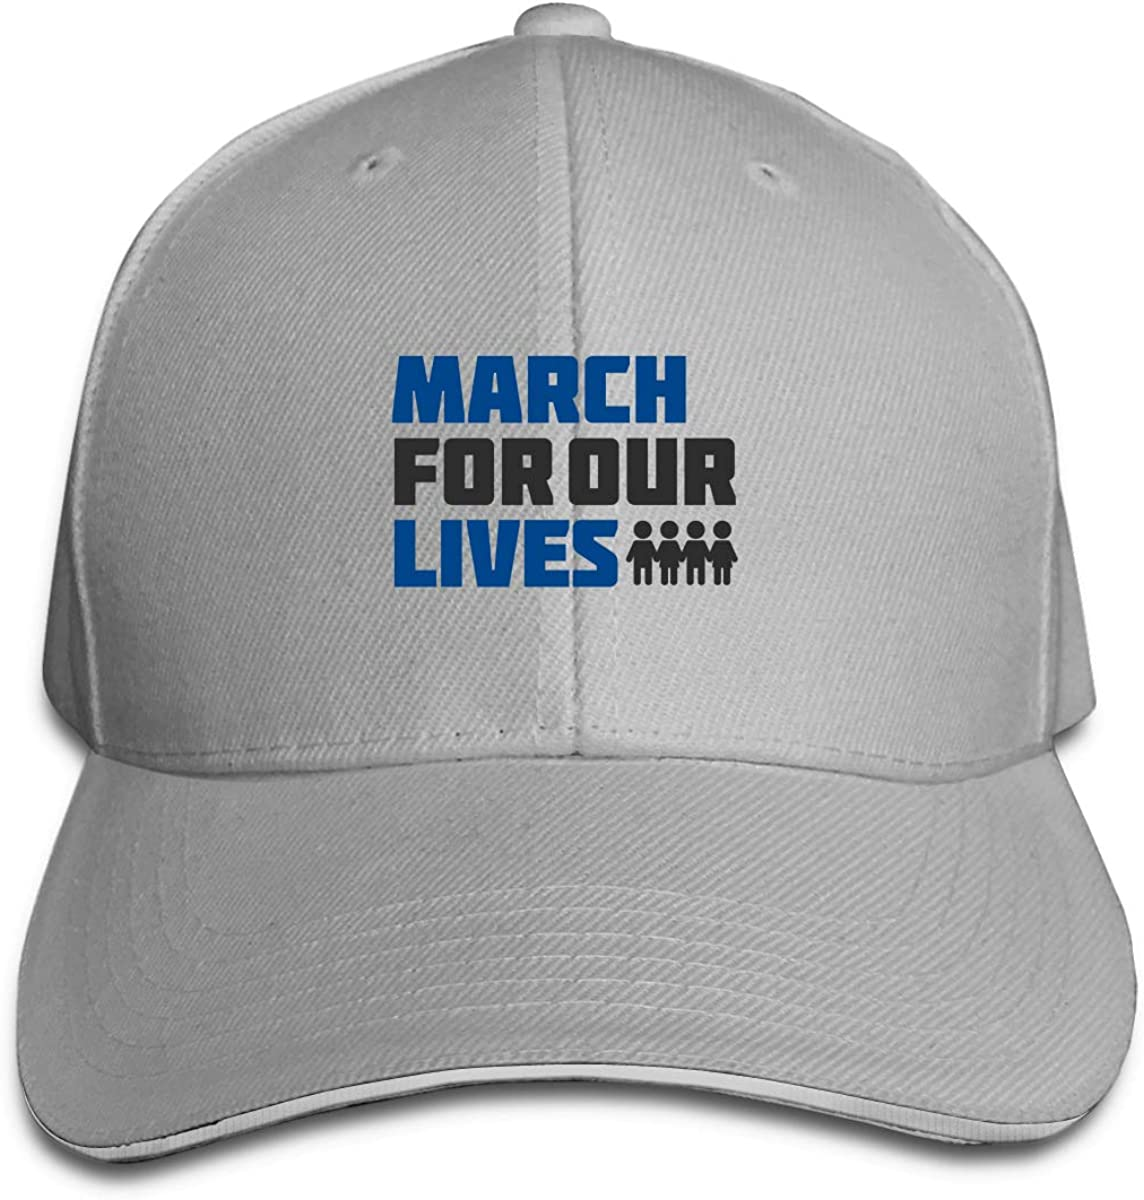 March for Our Lives Logo Classic Adjustable Cotton Baseball Caps Trucker Driver Hat Outdoor Cap Gray